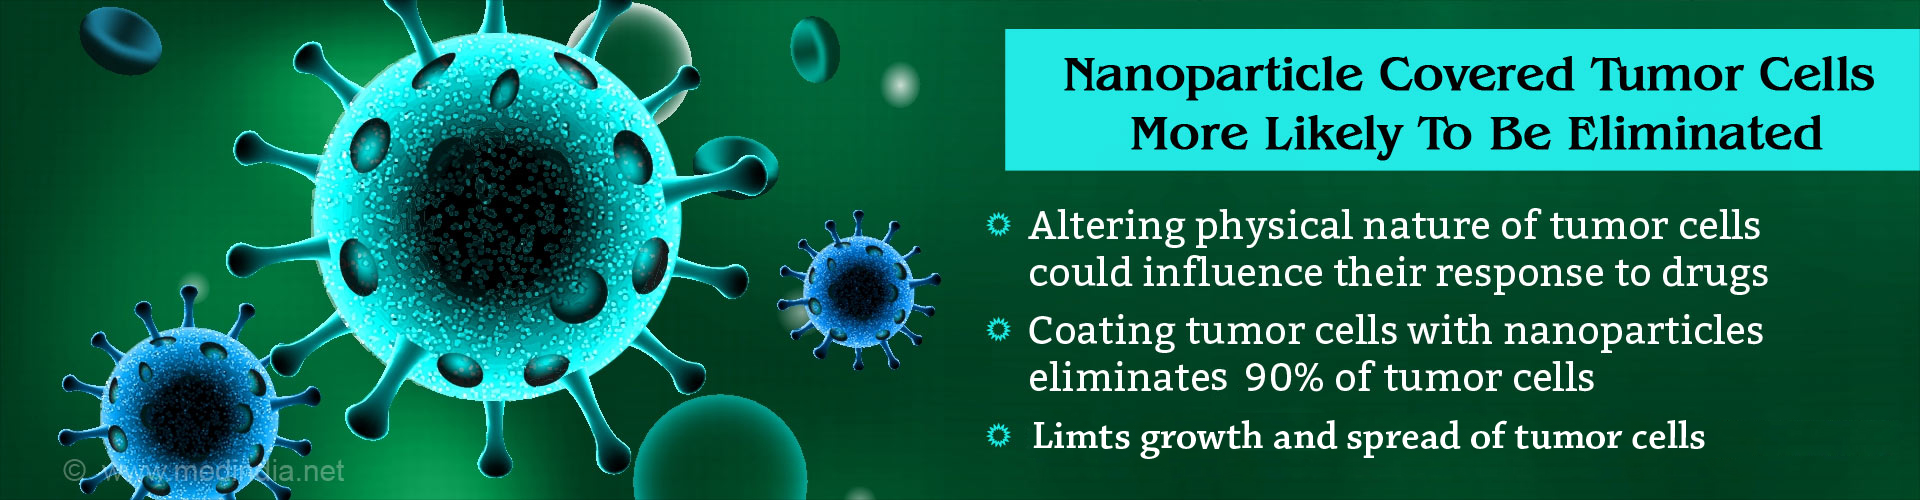 Nanoparticle Coated Tumor Cells More Likely To Be Eliminated